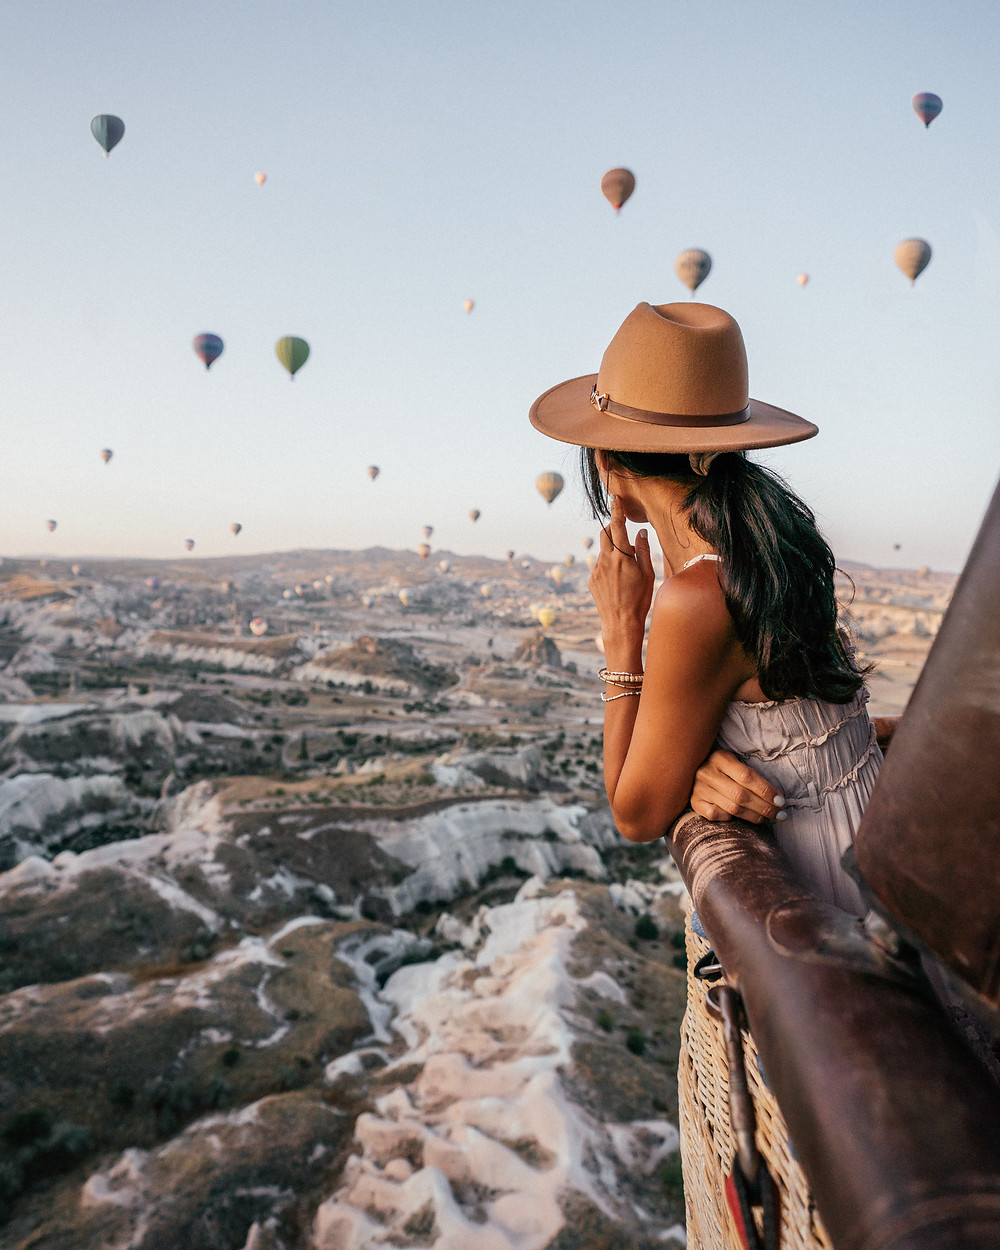 Hot Air Balloon Ride, Cappadocia, Turkey